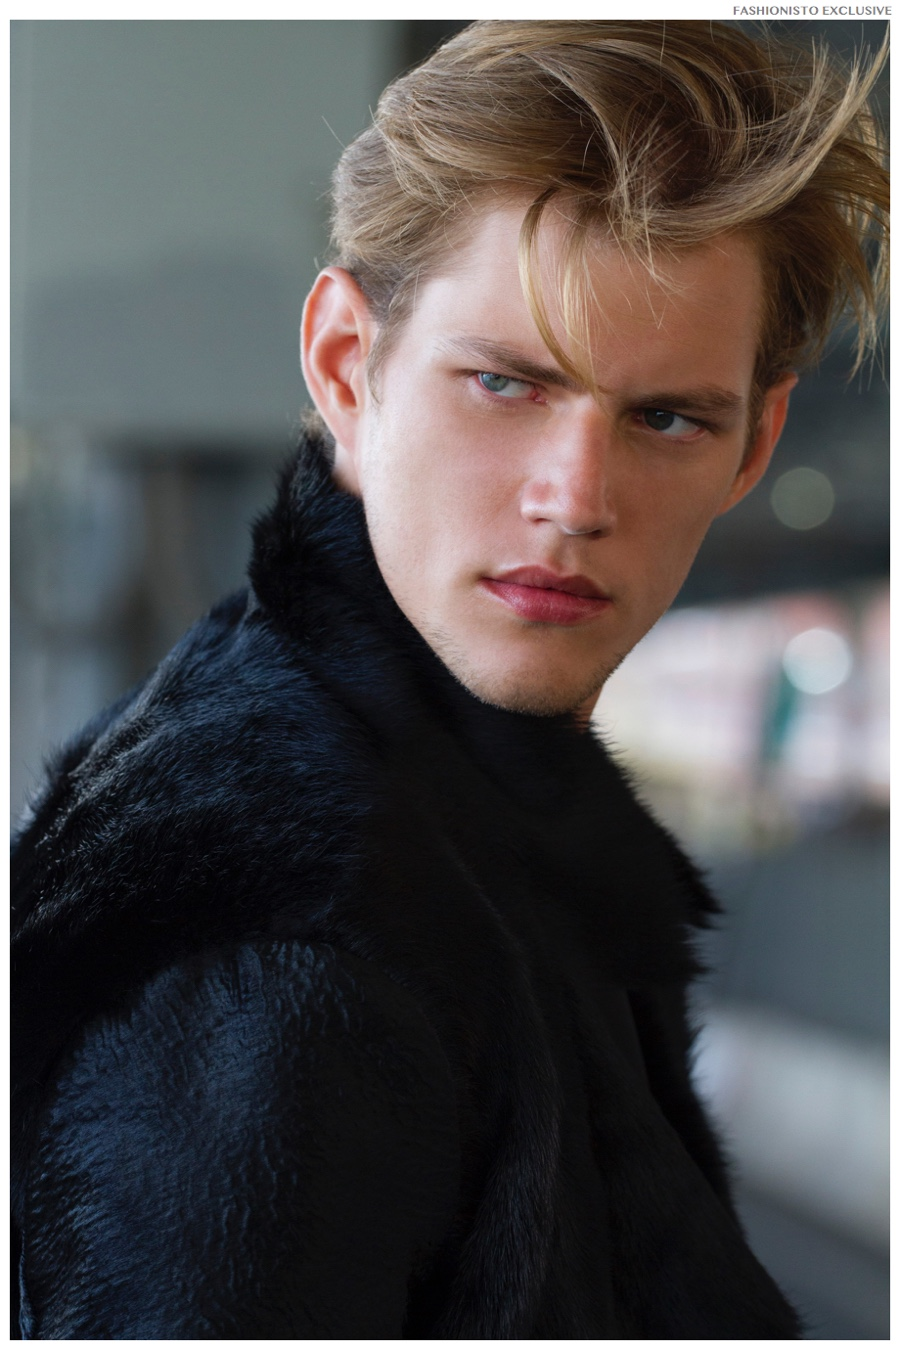 Fashionisto Exclusive: Infinity by Bell Soto